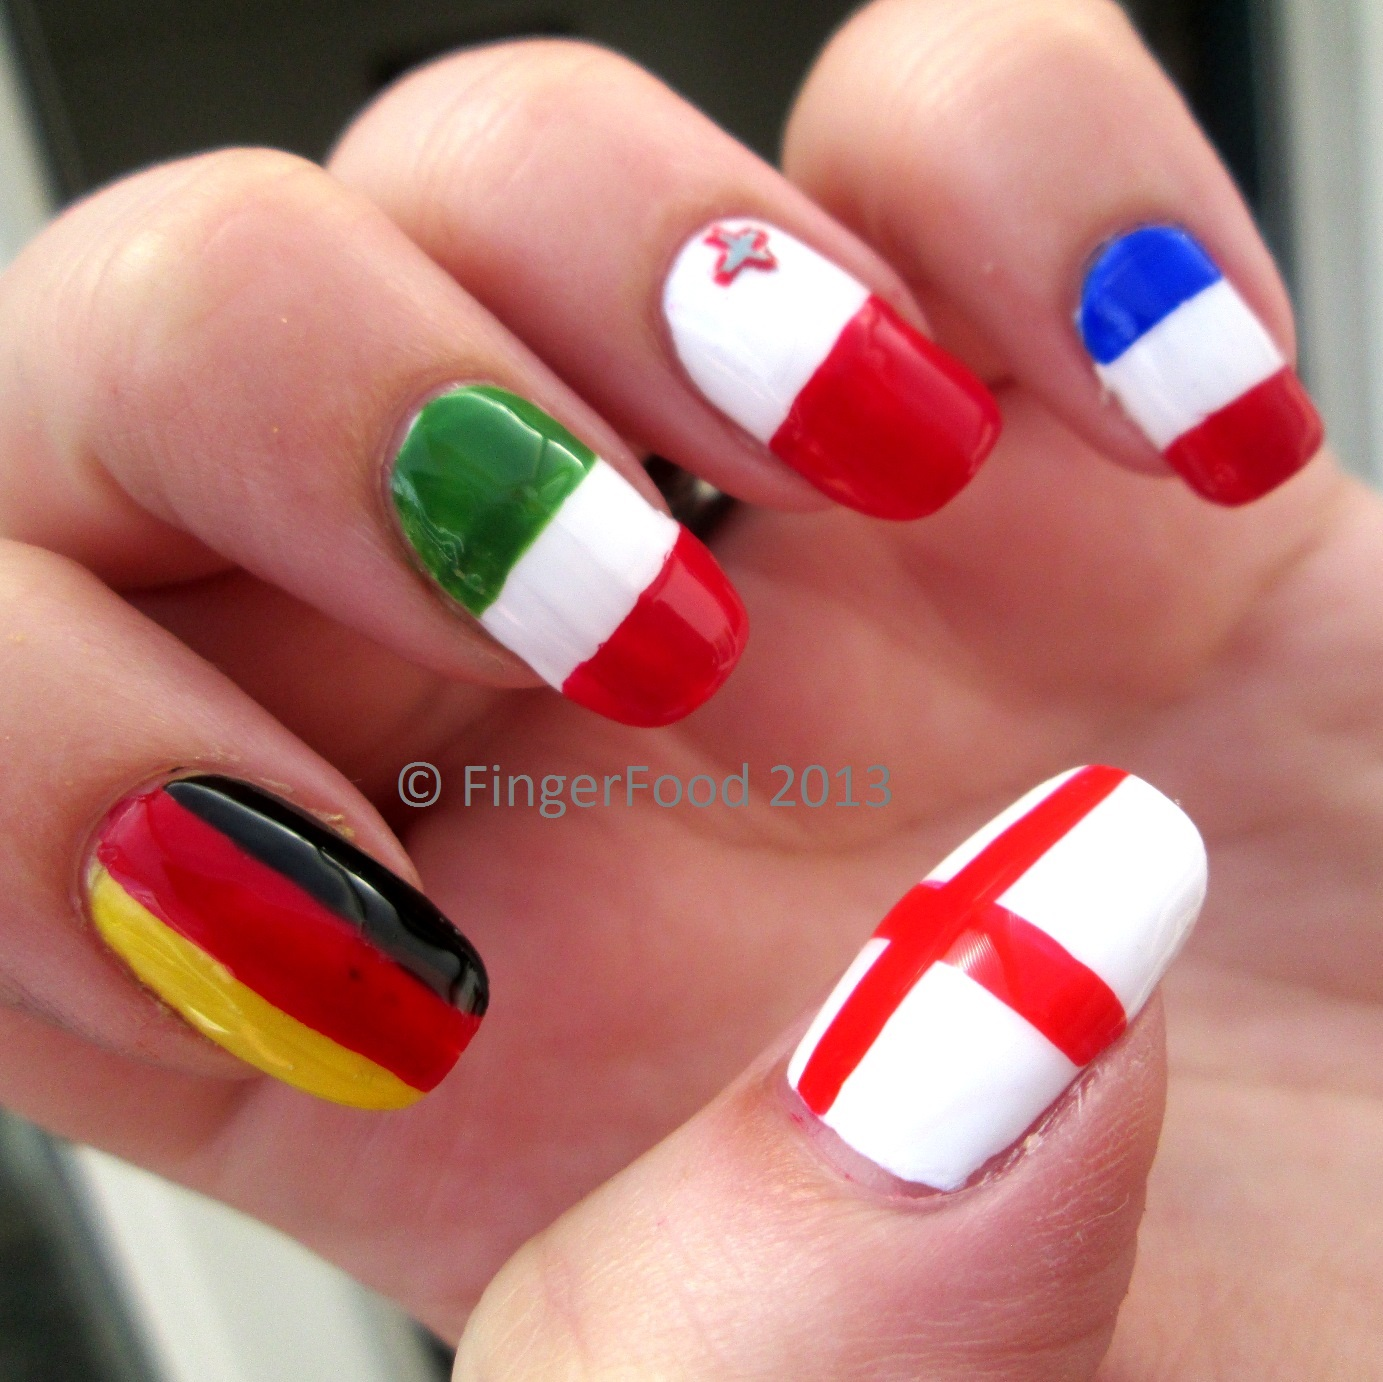 FingerFood: NCC Around the World month #4 - A European Road Trip